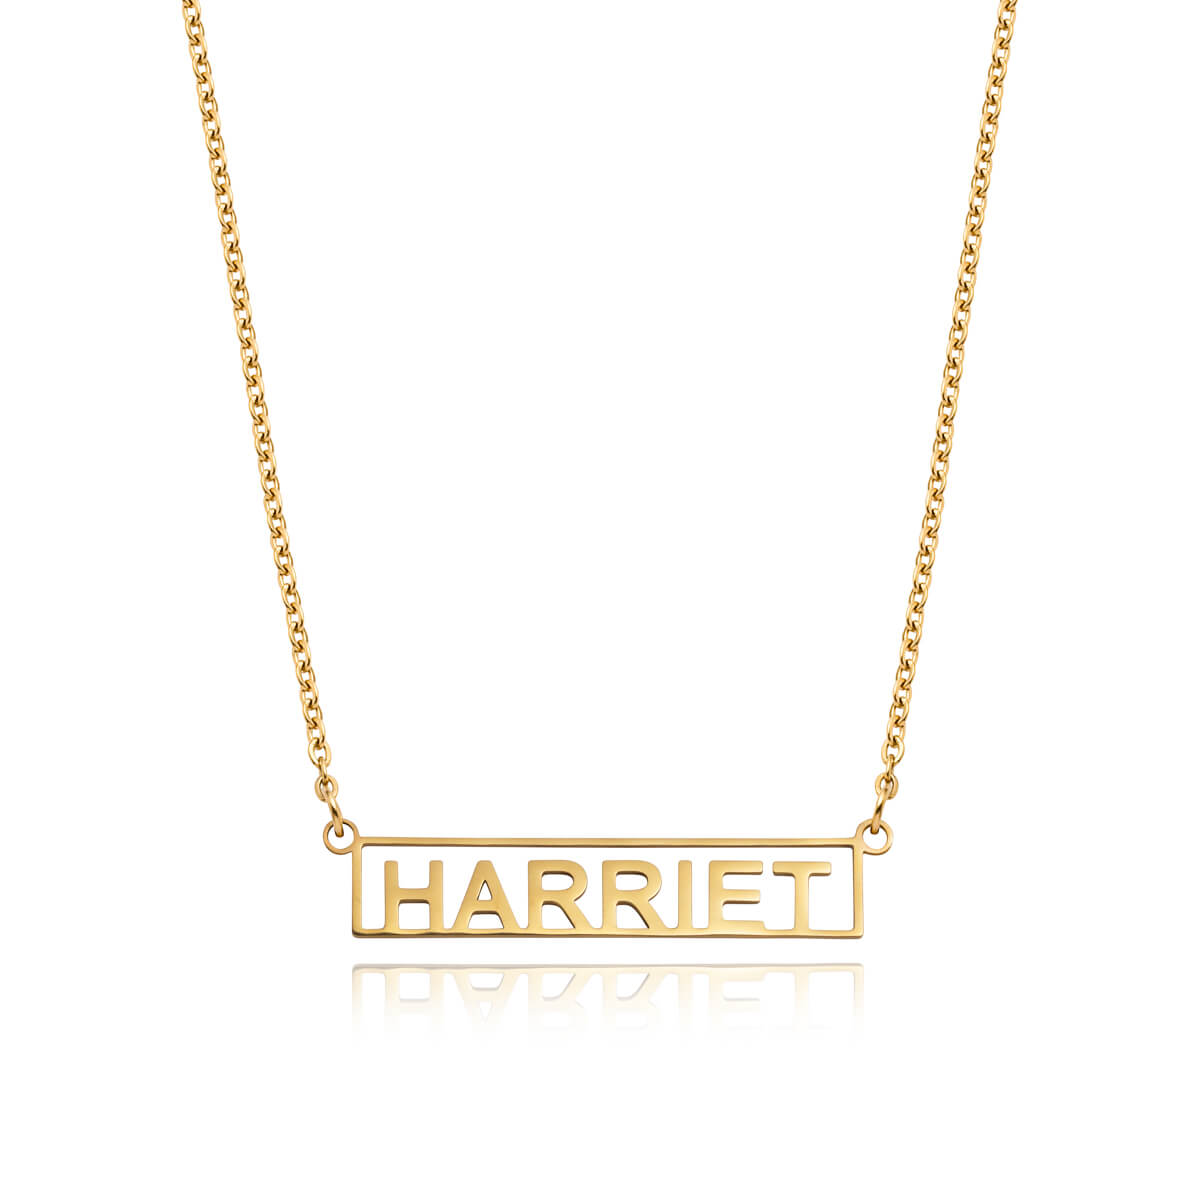 Framed Name Necklace (Gold)